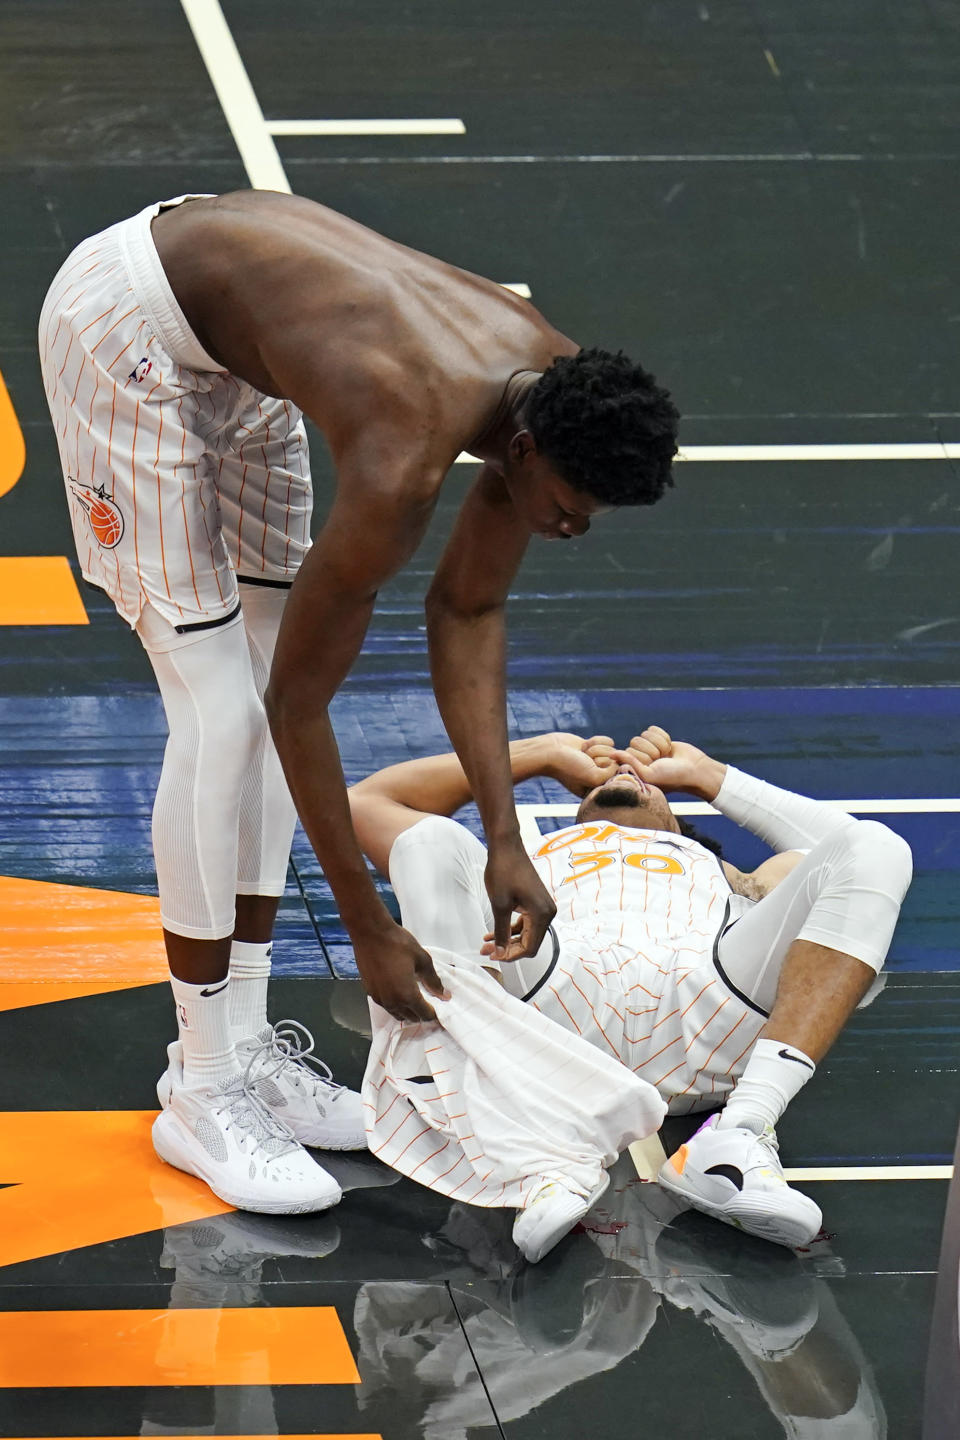 Orlando Magic center Mo Bamba, left, covers teammate guard Devin Cannady's ankle with his jersey after Cannady was injured during the first half of an NBA basketball game against the Indiana Pacers, Sunday, April 25, 2021, in Orlando, Fla. (AP Photo/John Raoux)